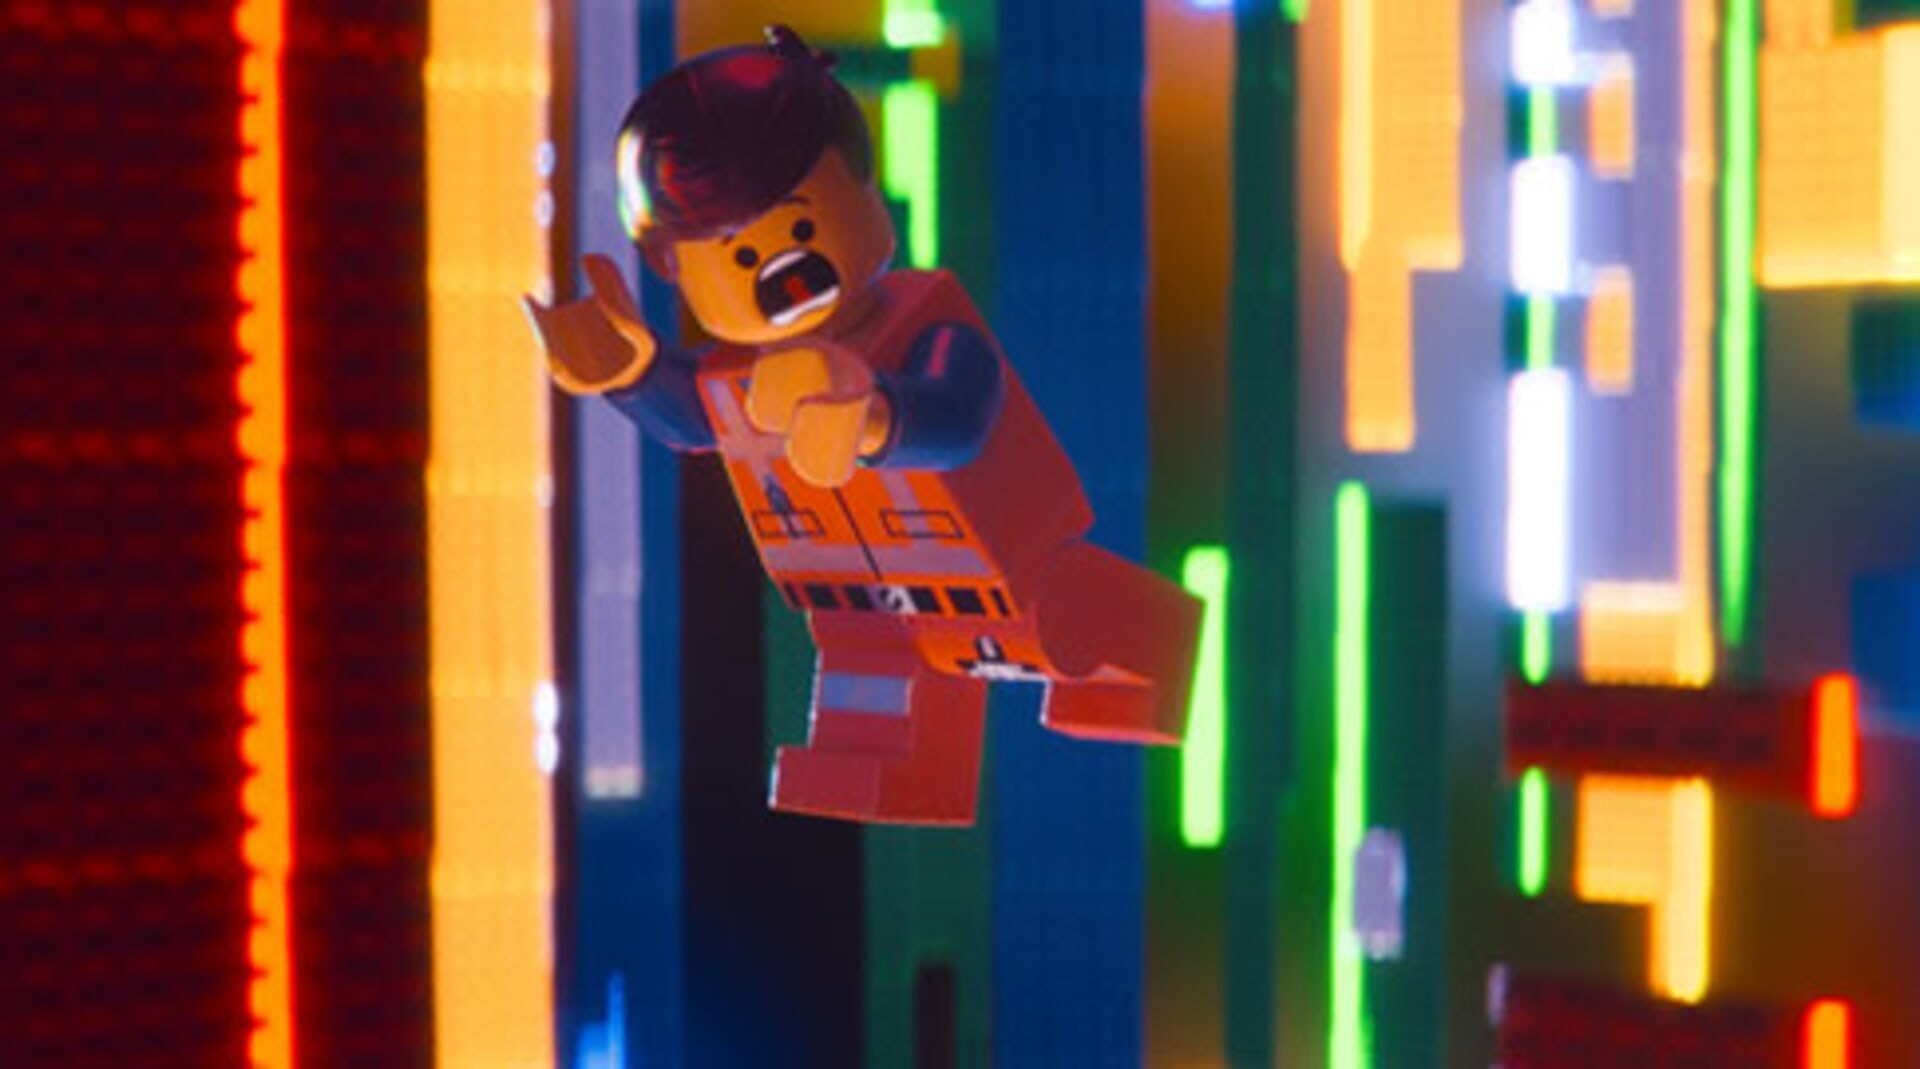 The Lego Movie - Image 19